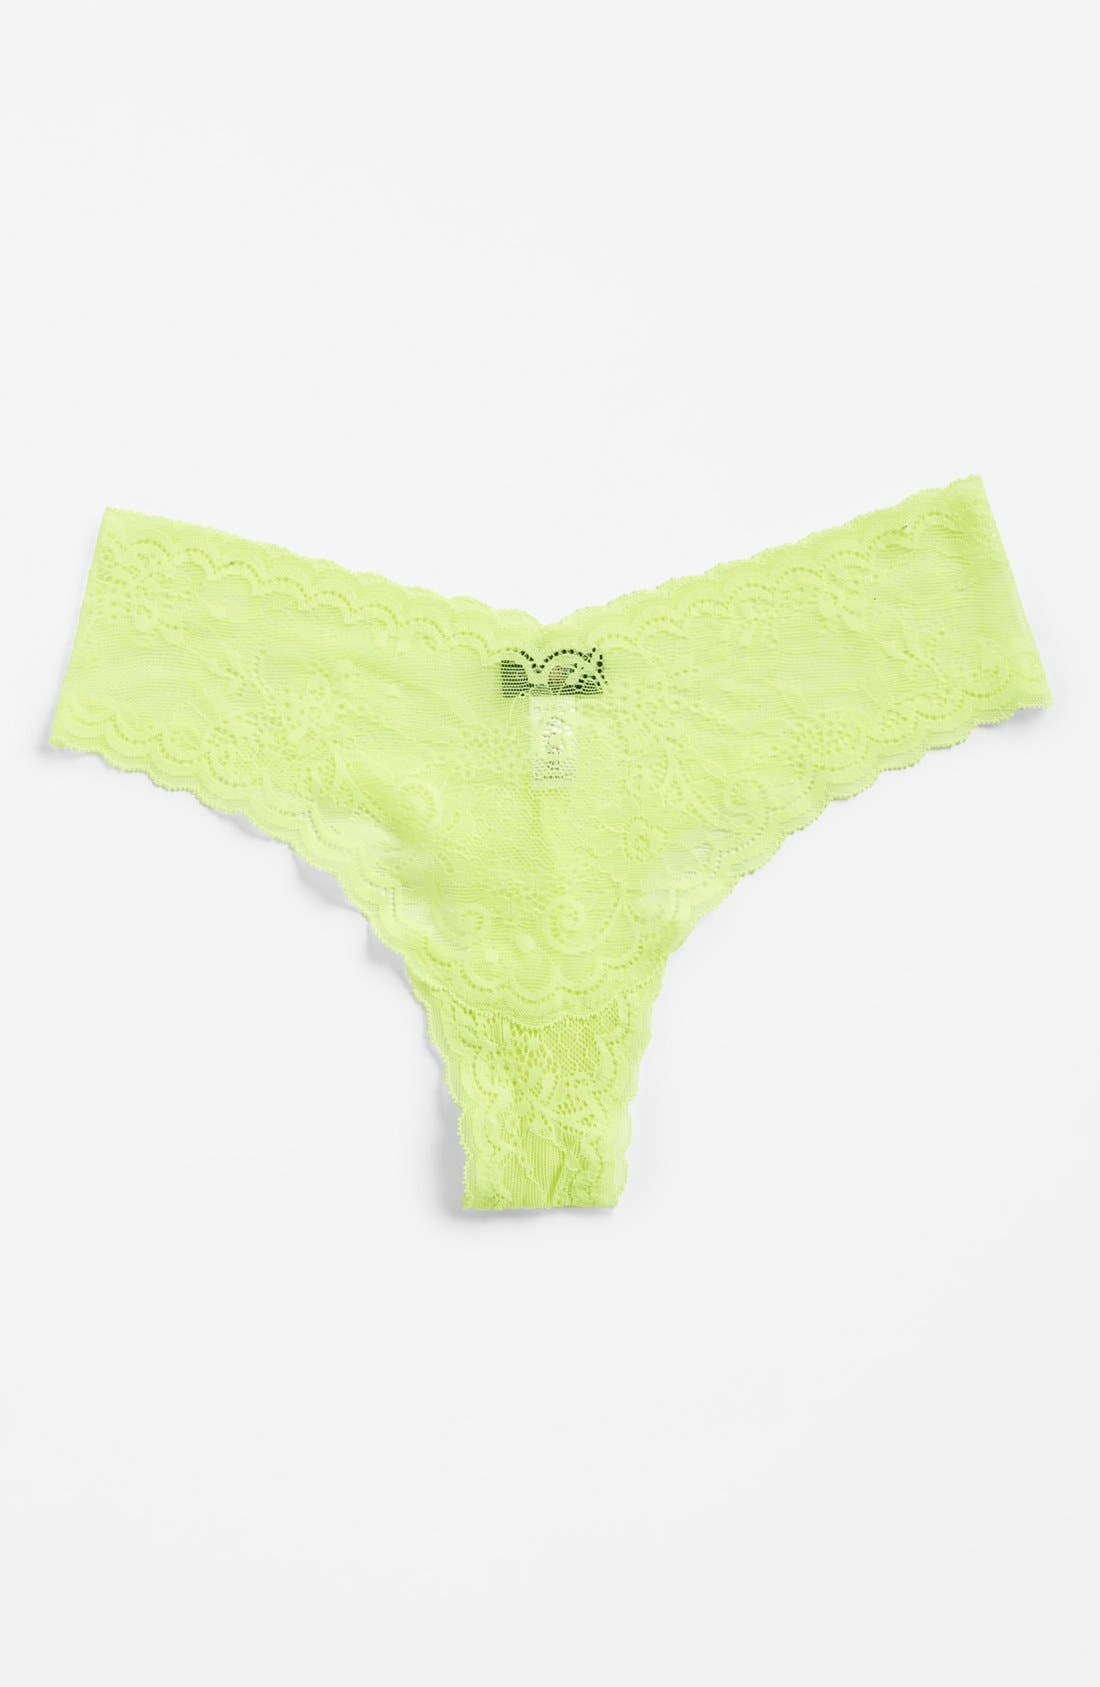 'Trenta' Low Rise Lace Thong,                             Alternate thumbnail 146, color,